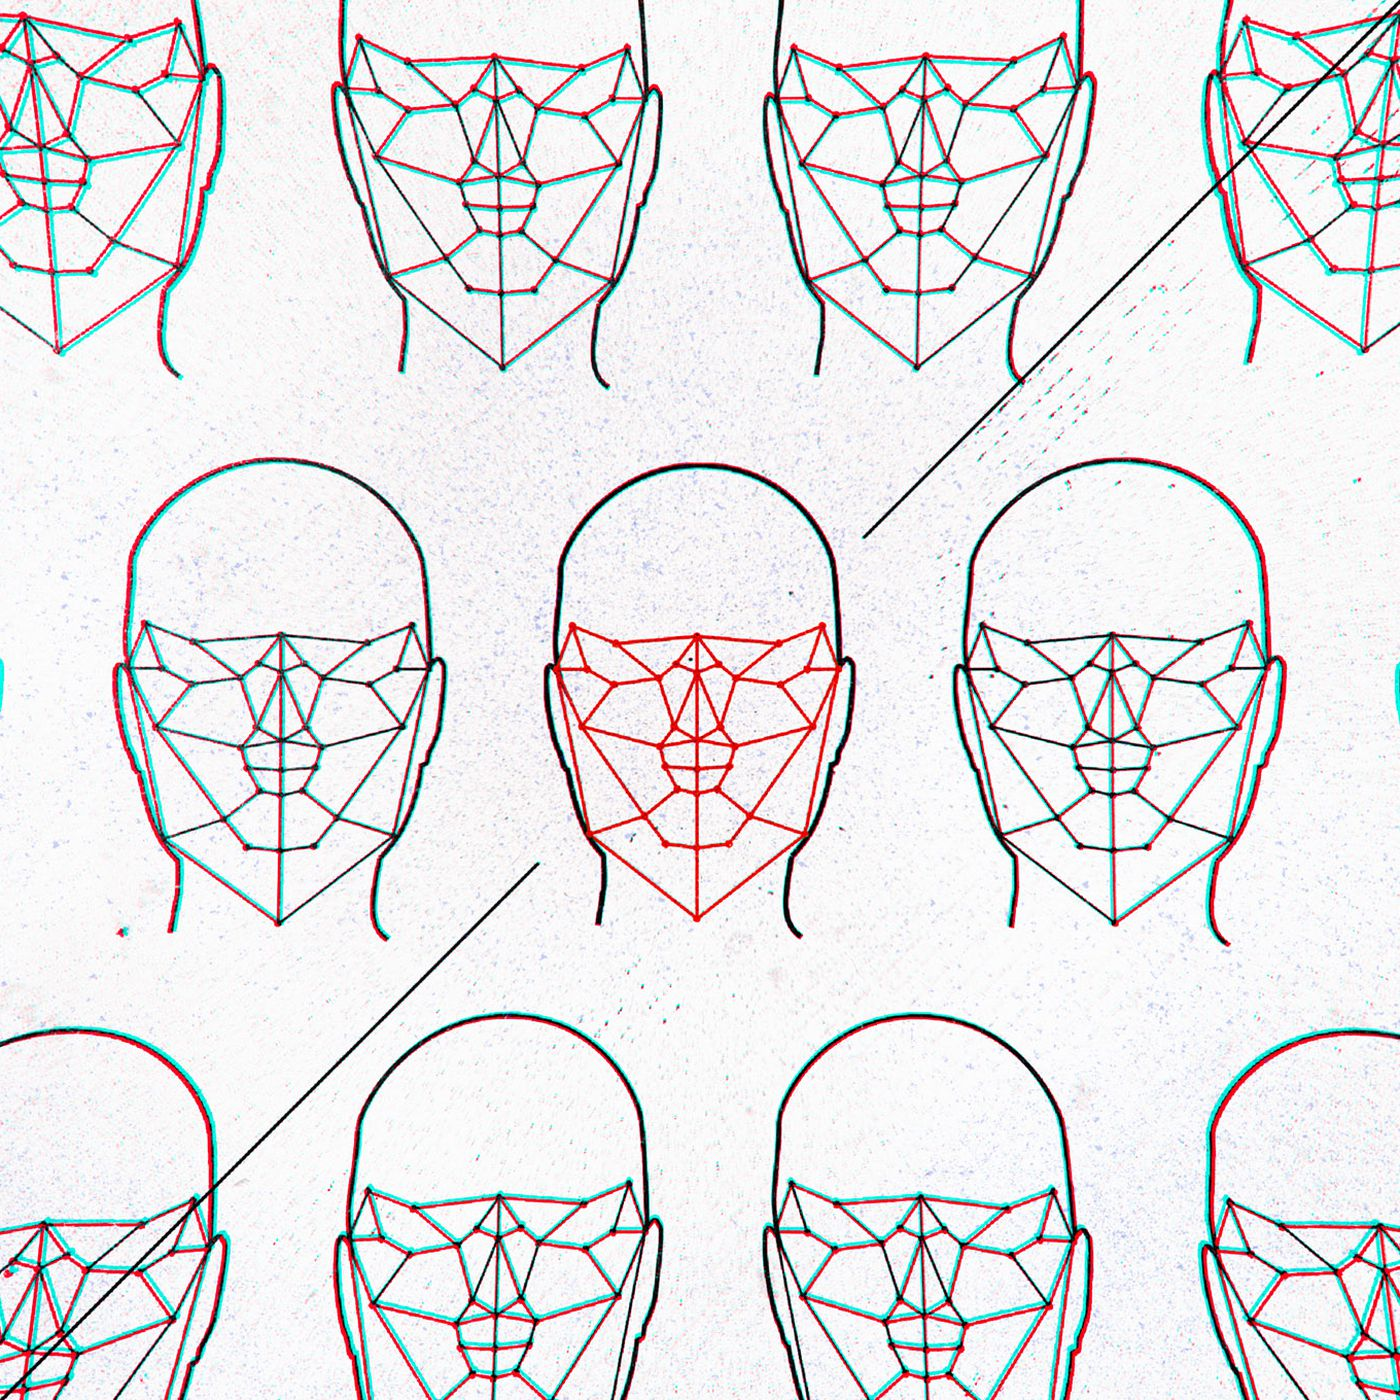 New facial recognition tool tracks targets across social